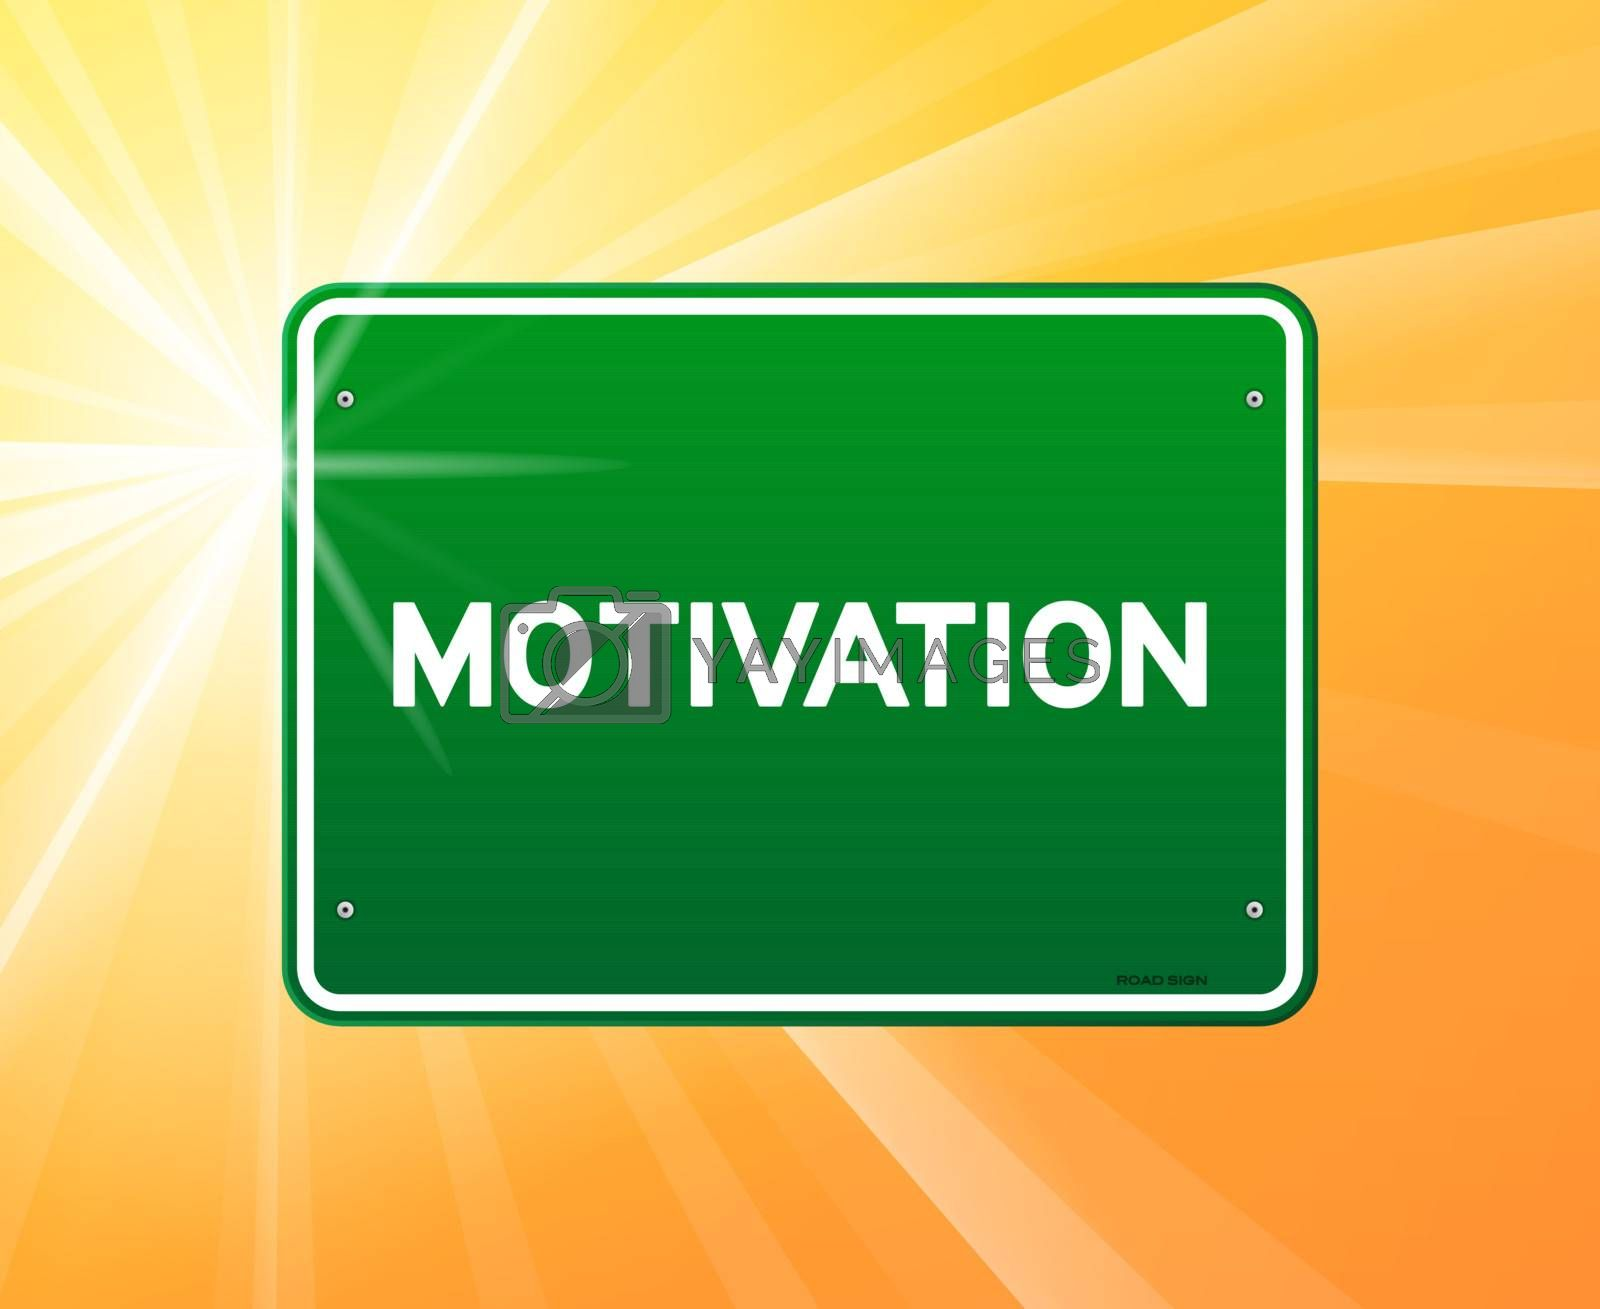 Motivation copy on green sign and sunny background